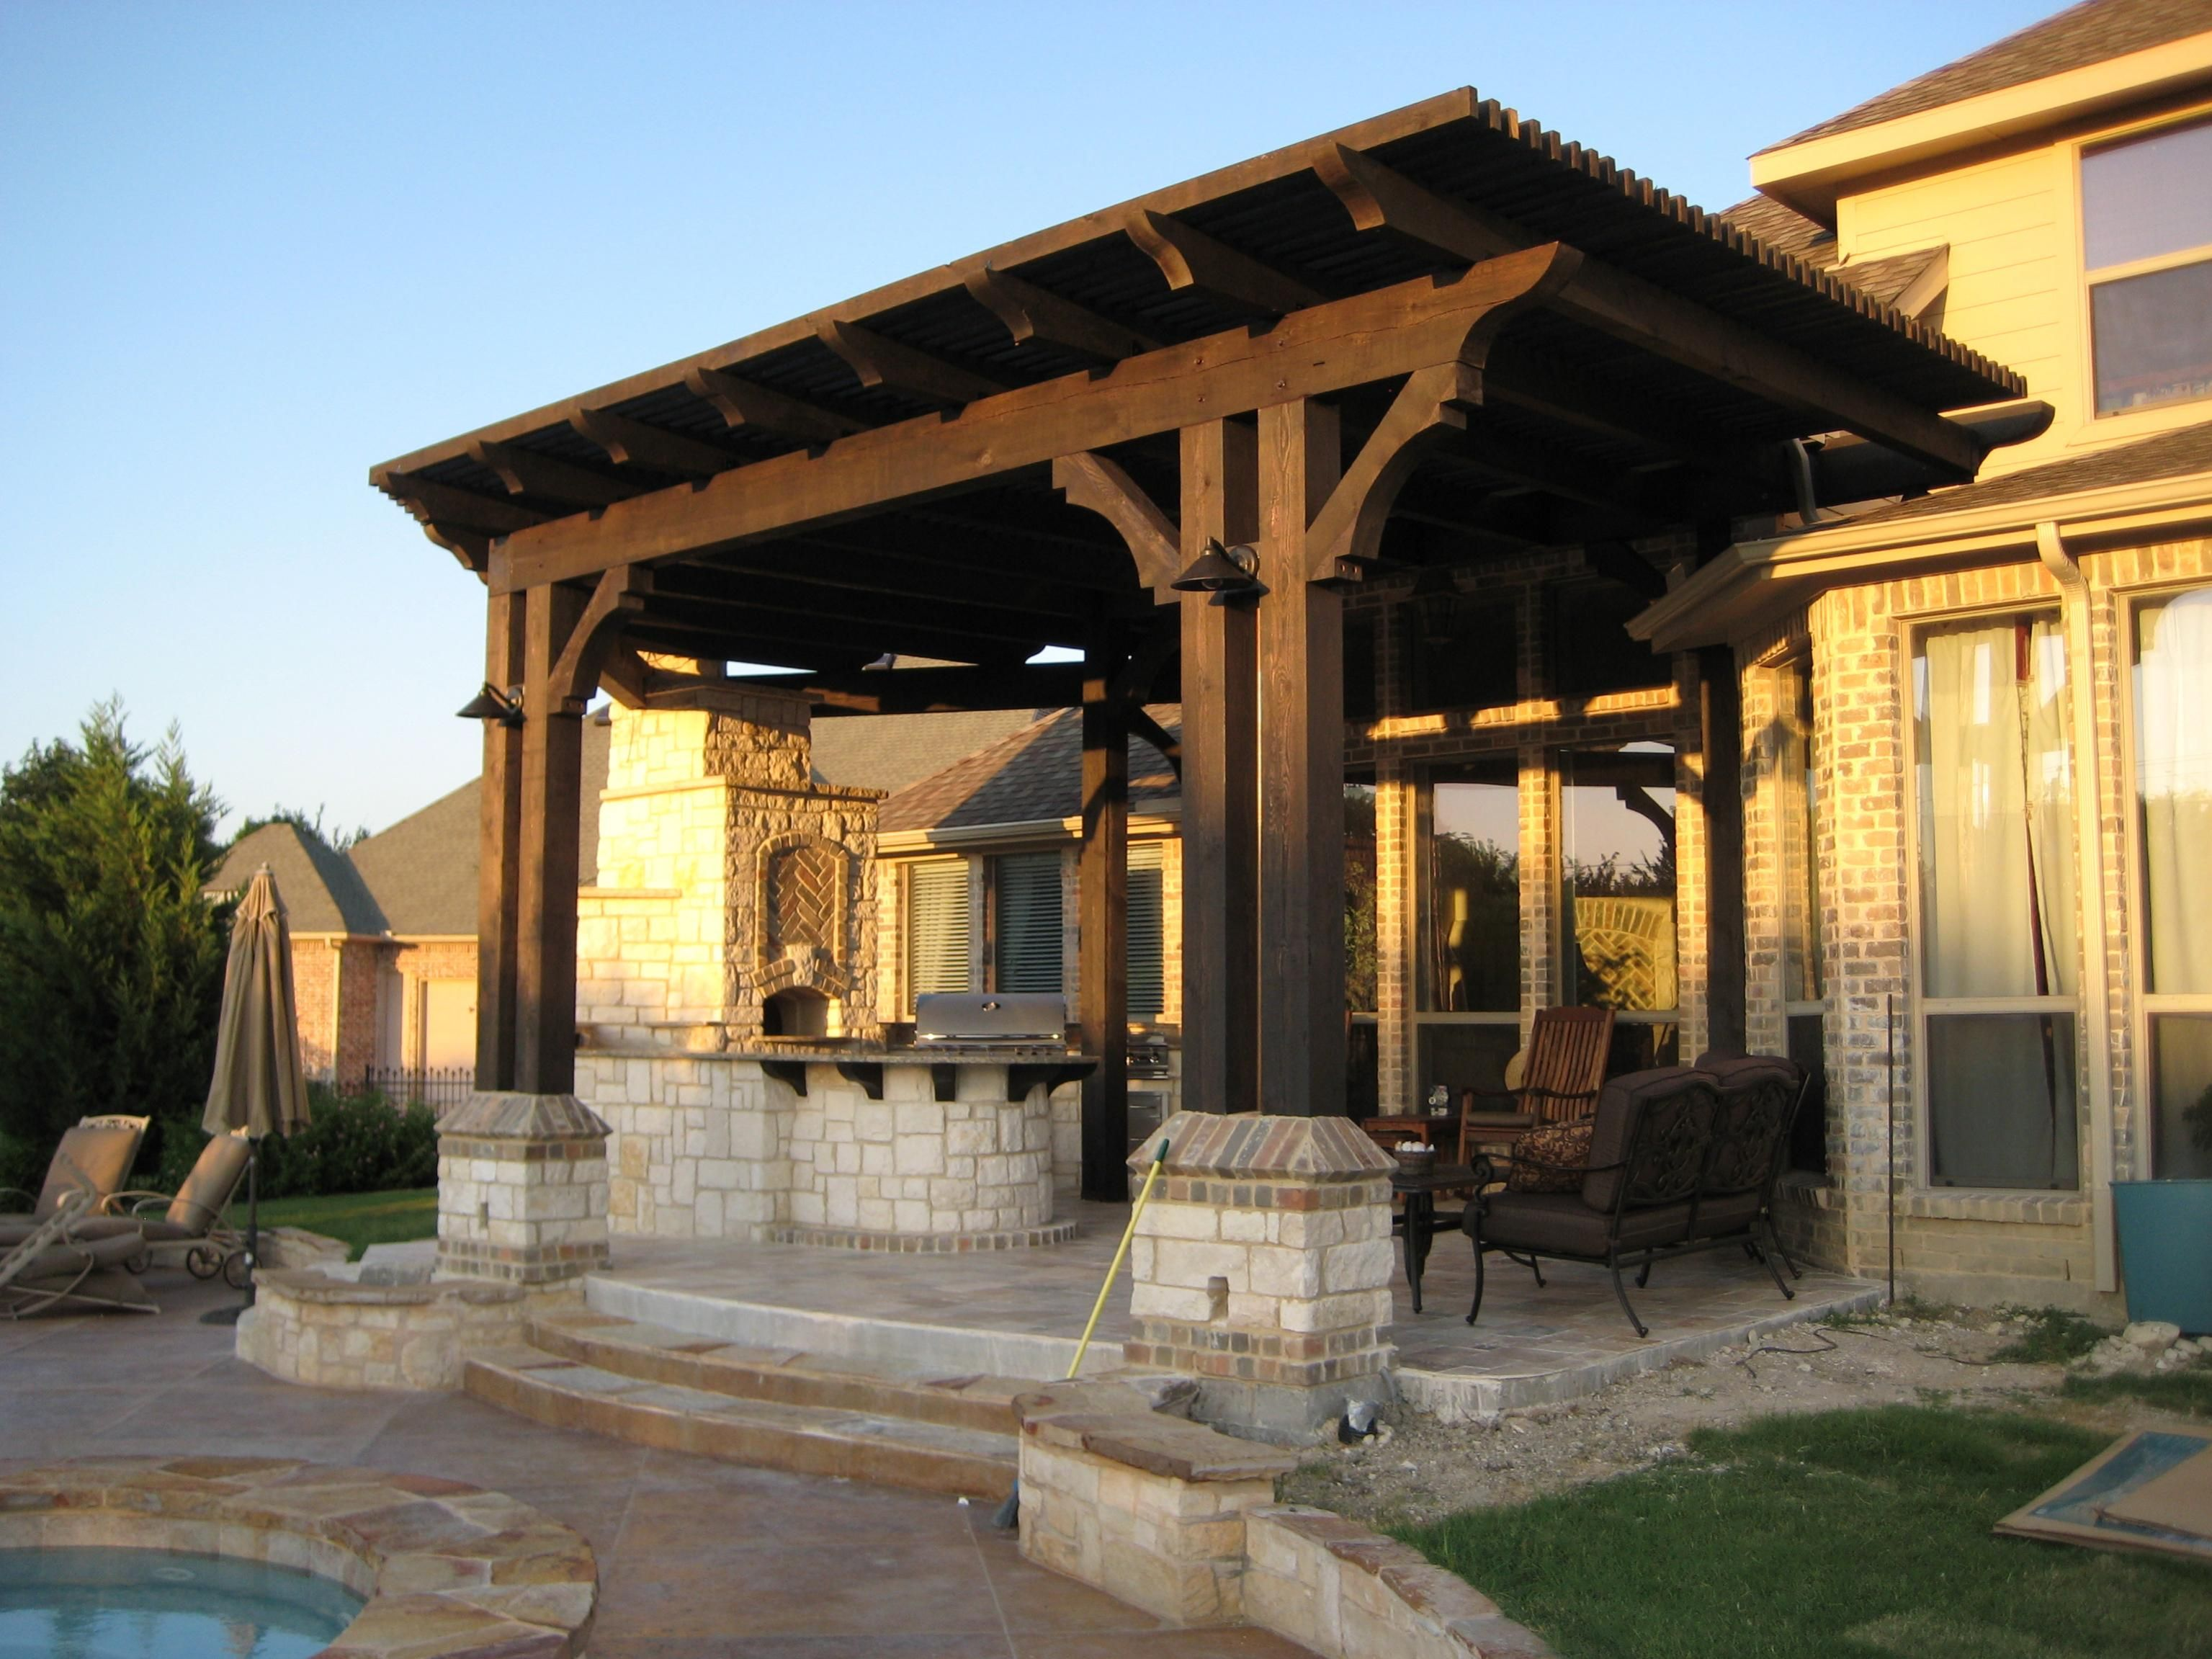 Arbor Designs Ideas patio arbor designs 1000 images about pergola and arbor designs on pinterest patio arbor designs ideas 17 Best Images About Diy Pergola Ideas On Pinterest Decks Backyards And Diy Pergola Arbor Arbor Designs Ideas